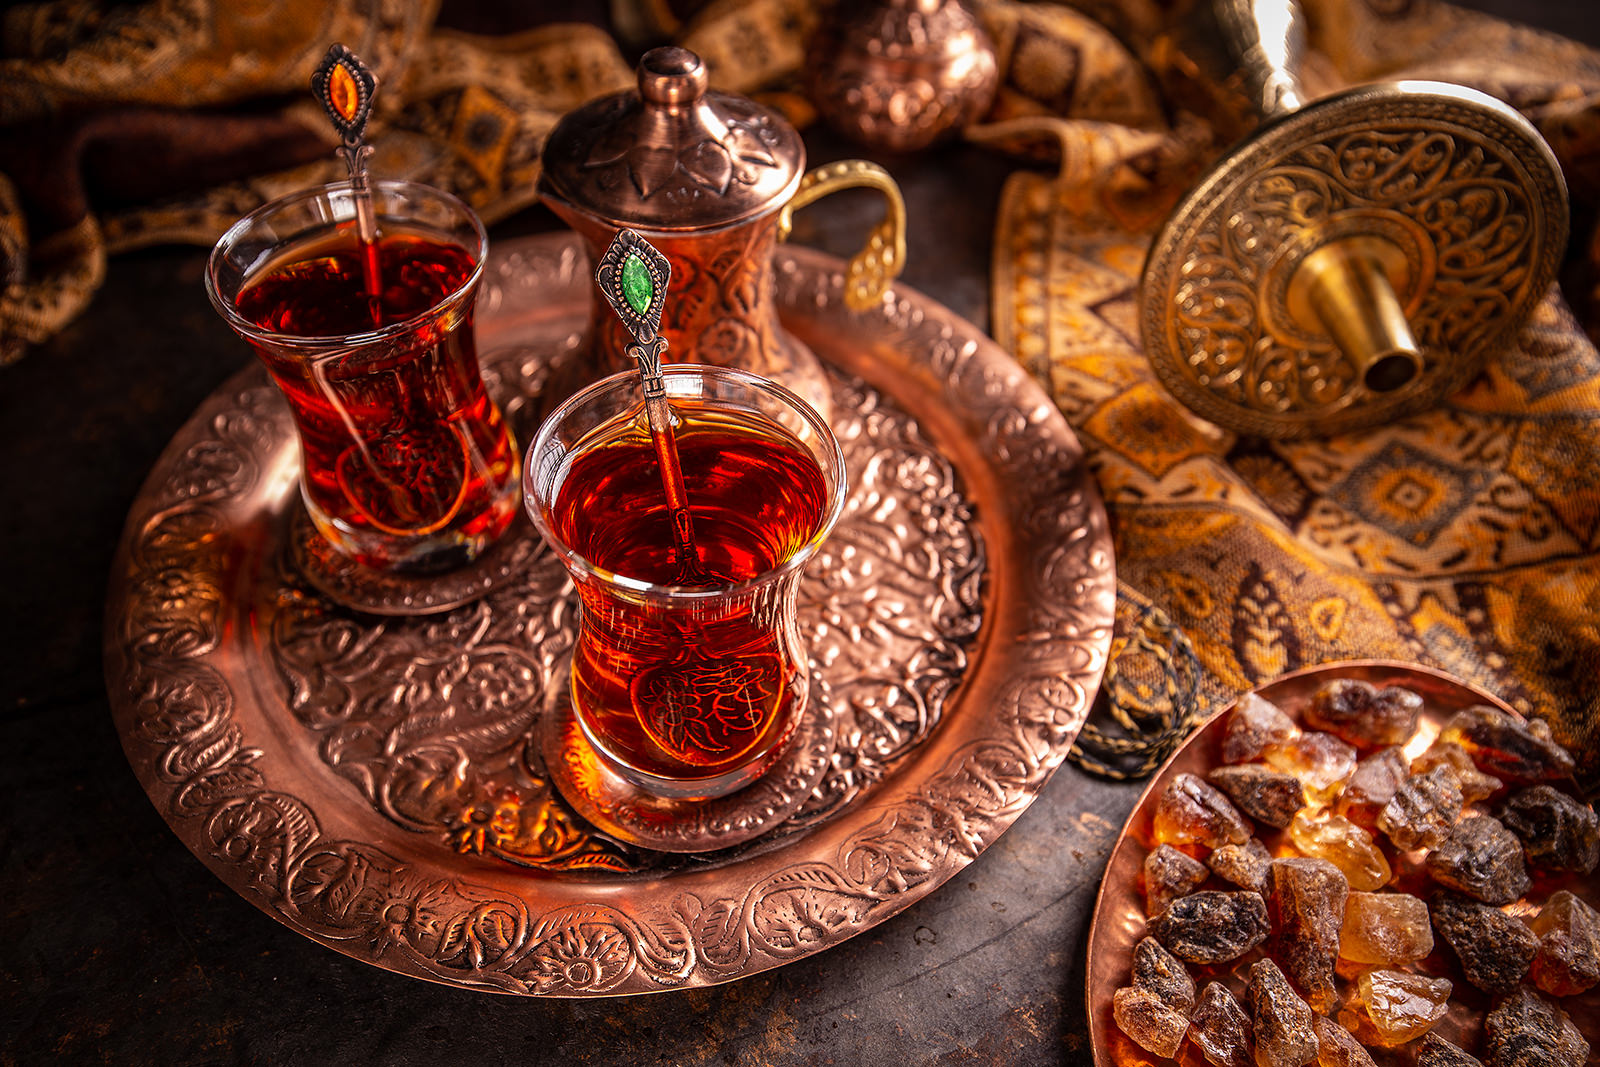 Turkish tea with authentic glass cup and copper tea kettles